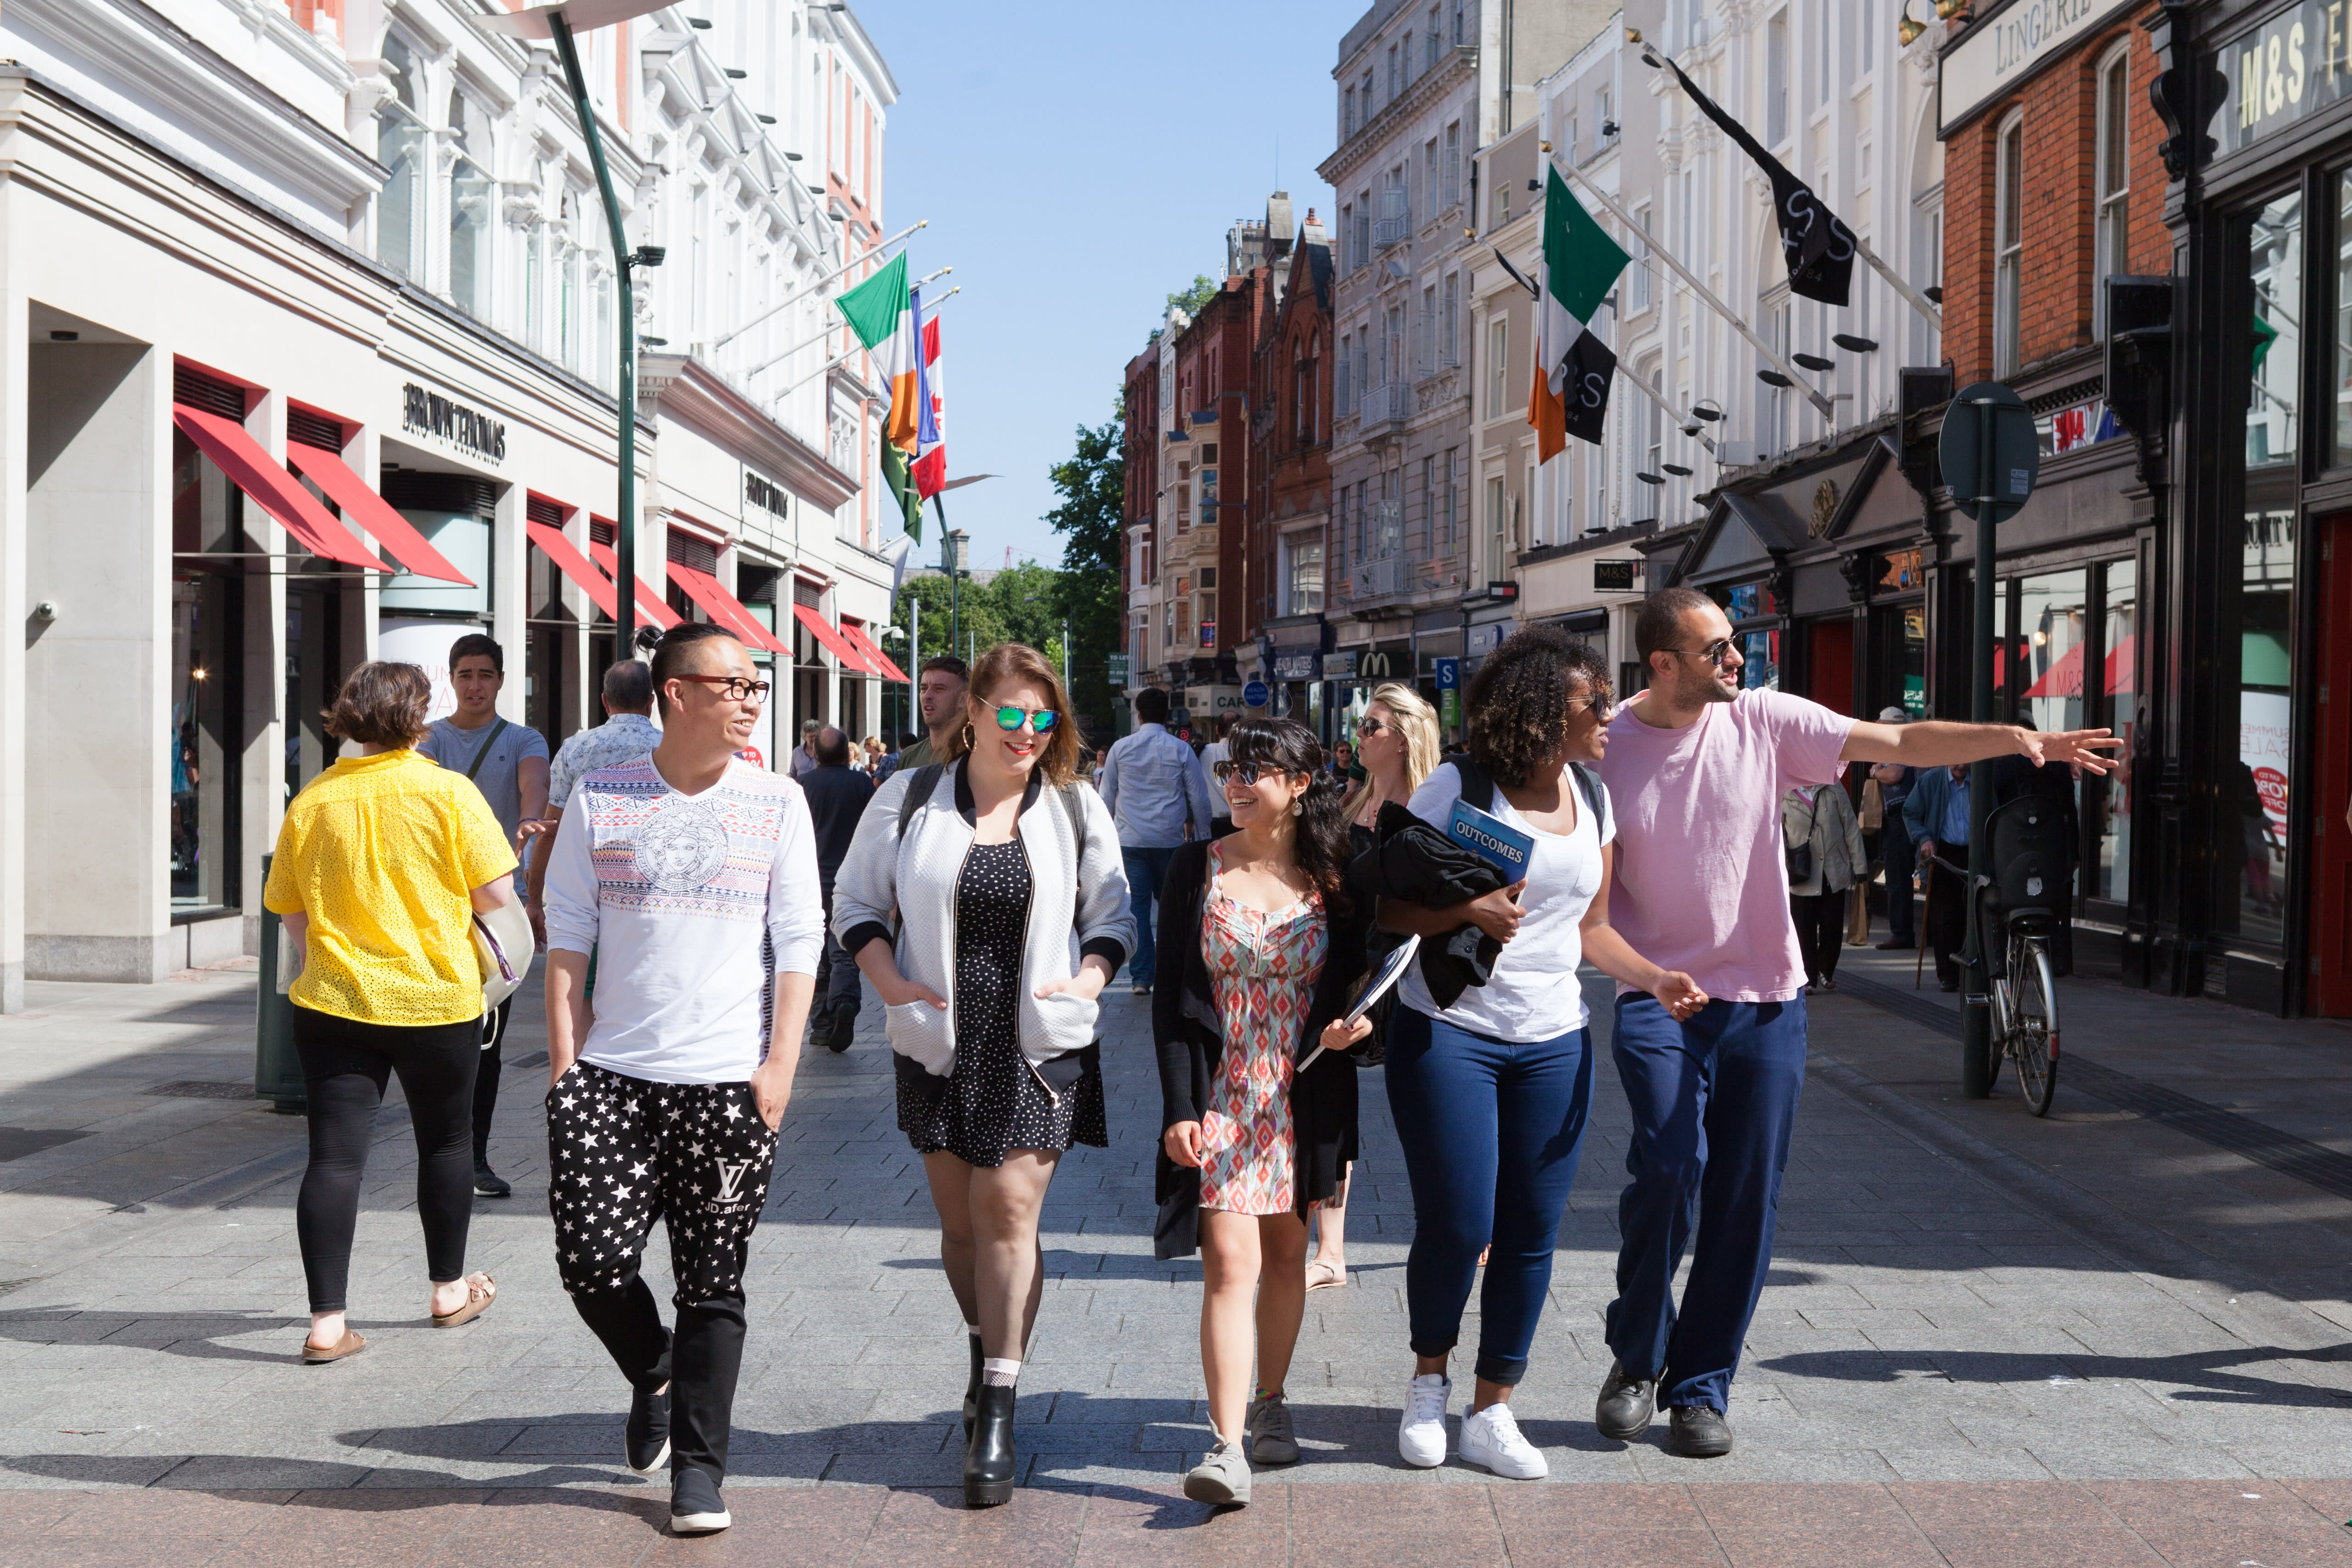 Class Pass: End-Of-Course Trip in Ireland